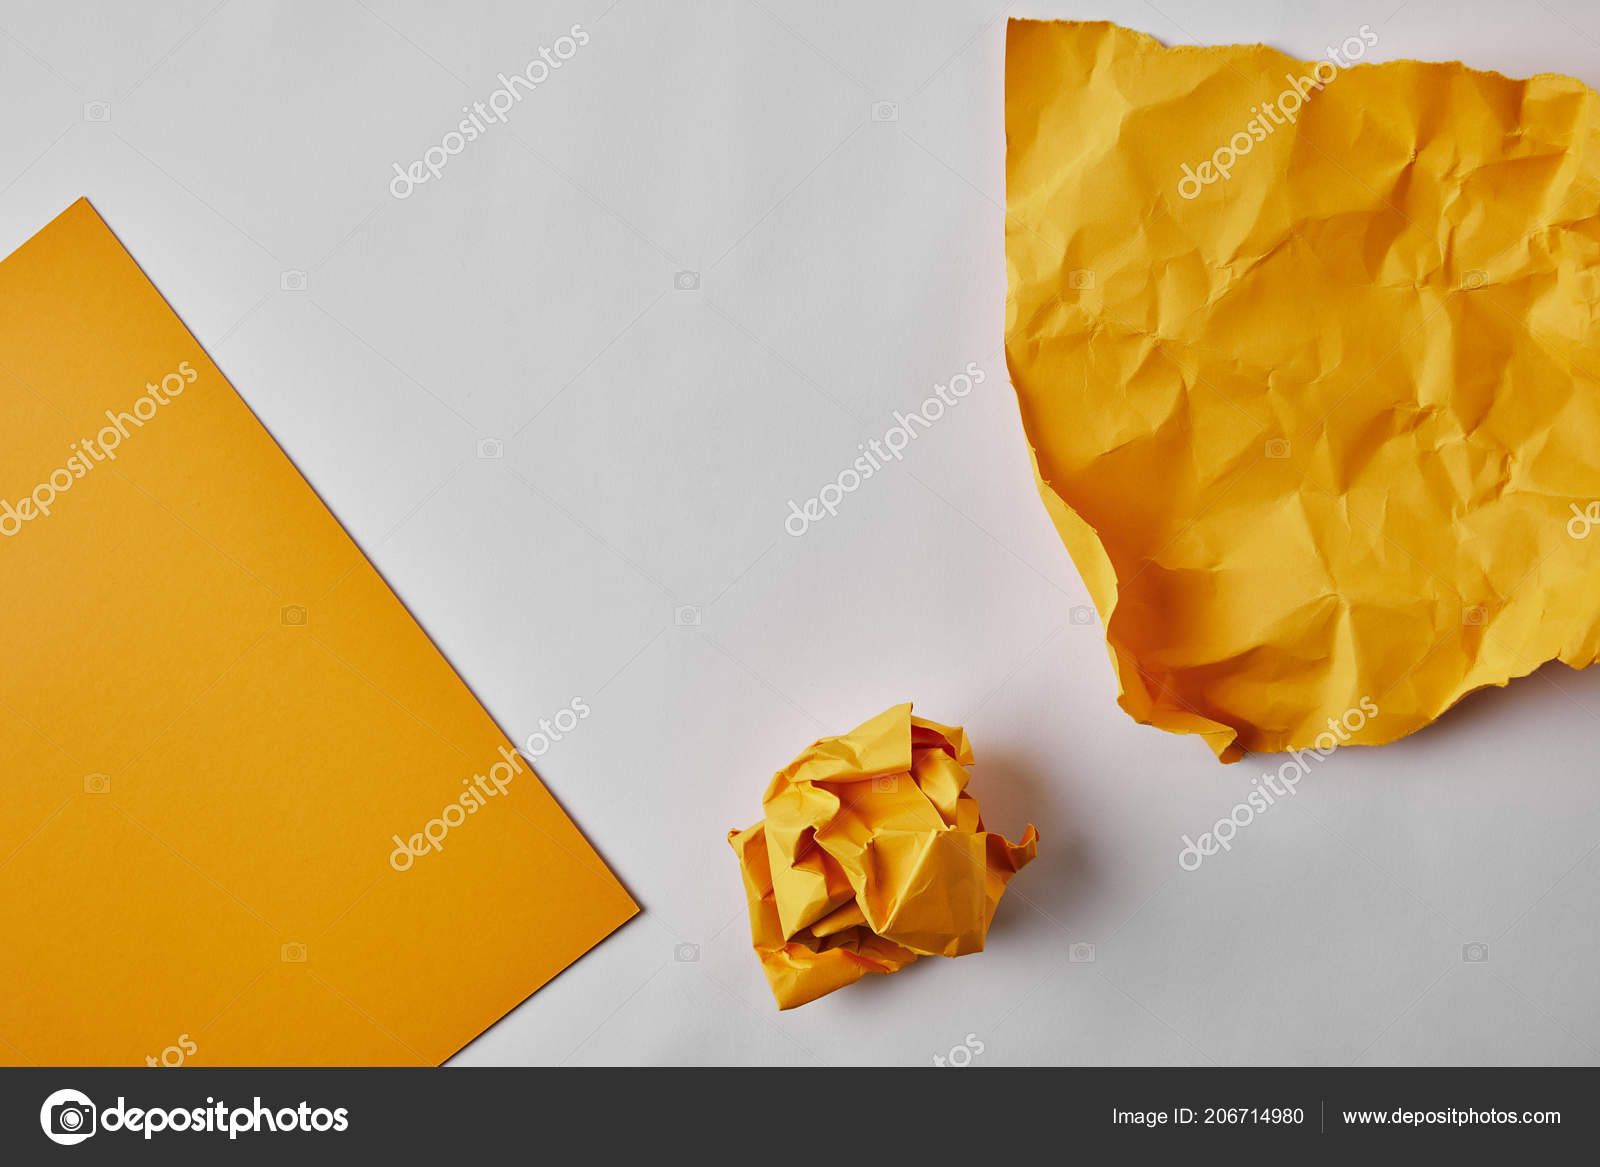 yellow paper vs white paper